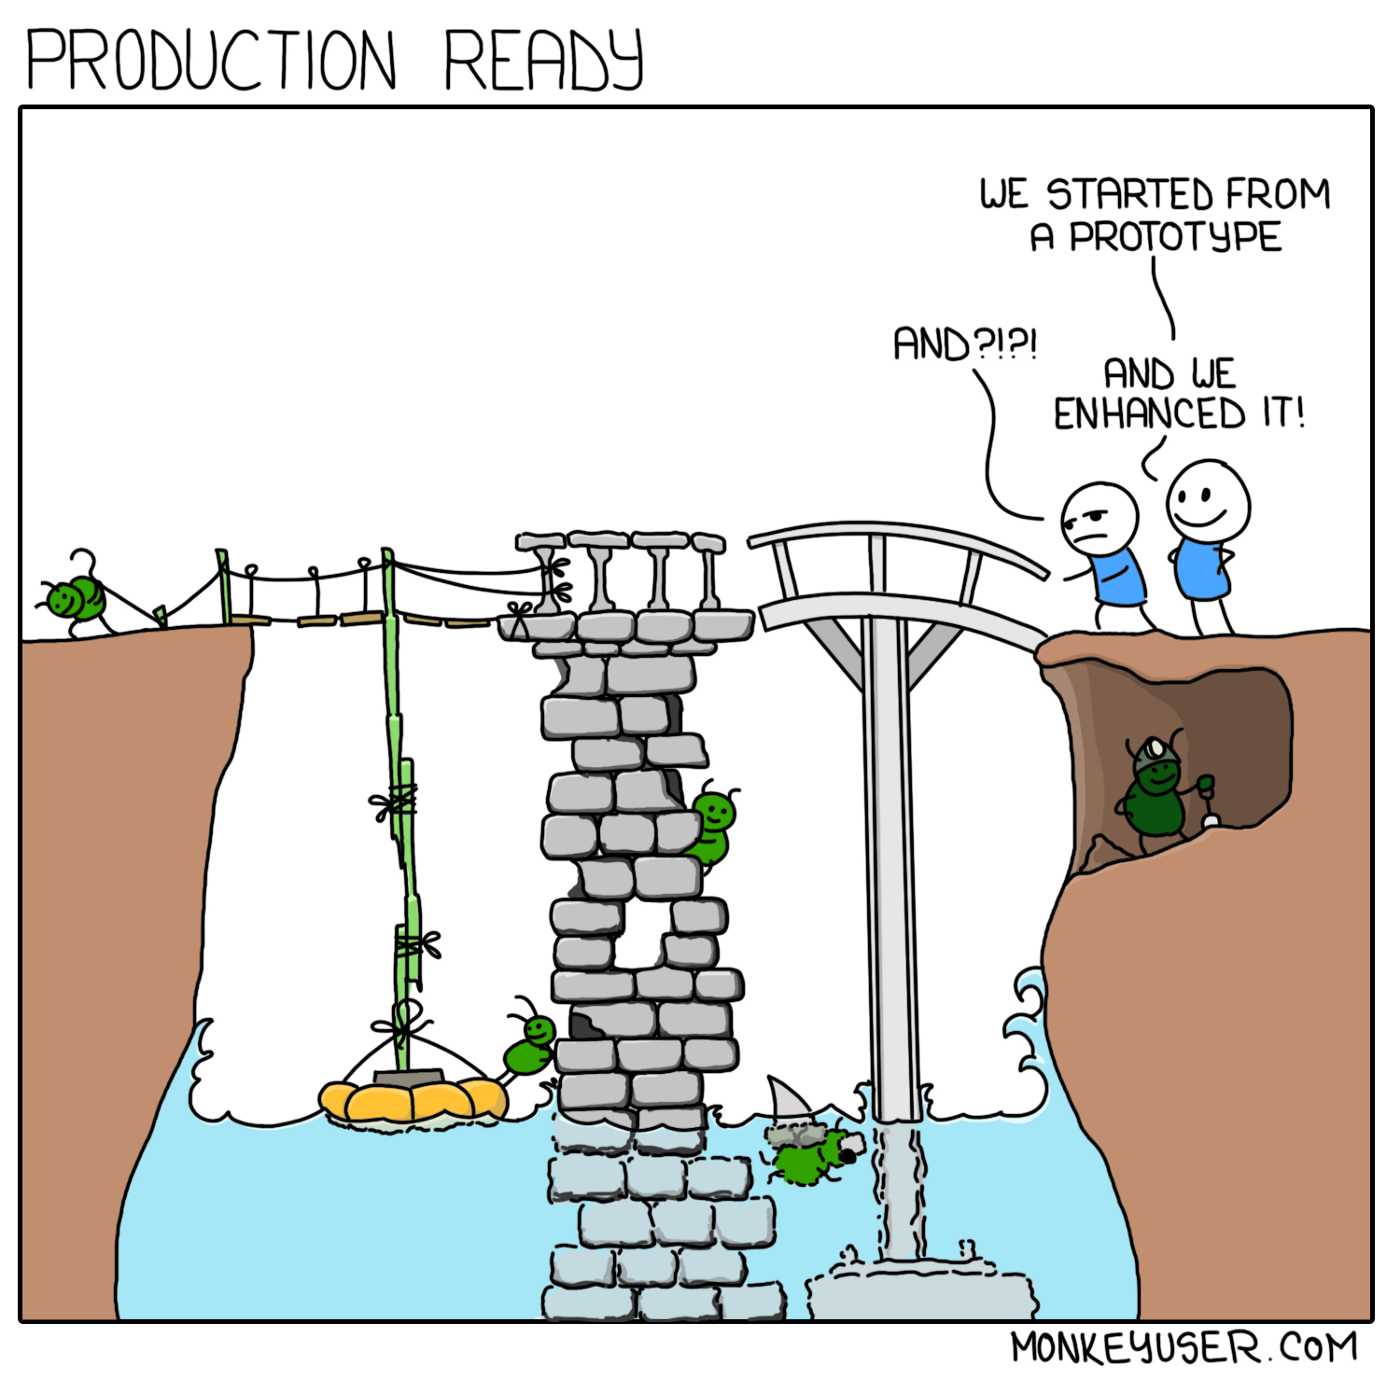 Production ready comic from monkeyuser.com